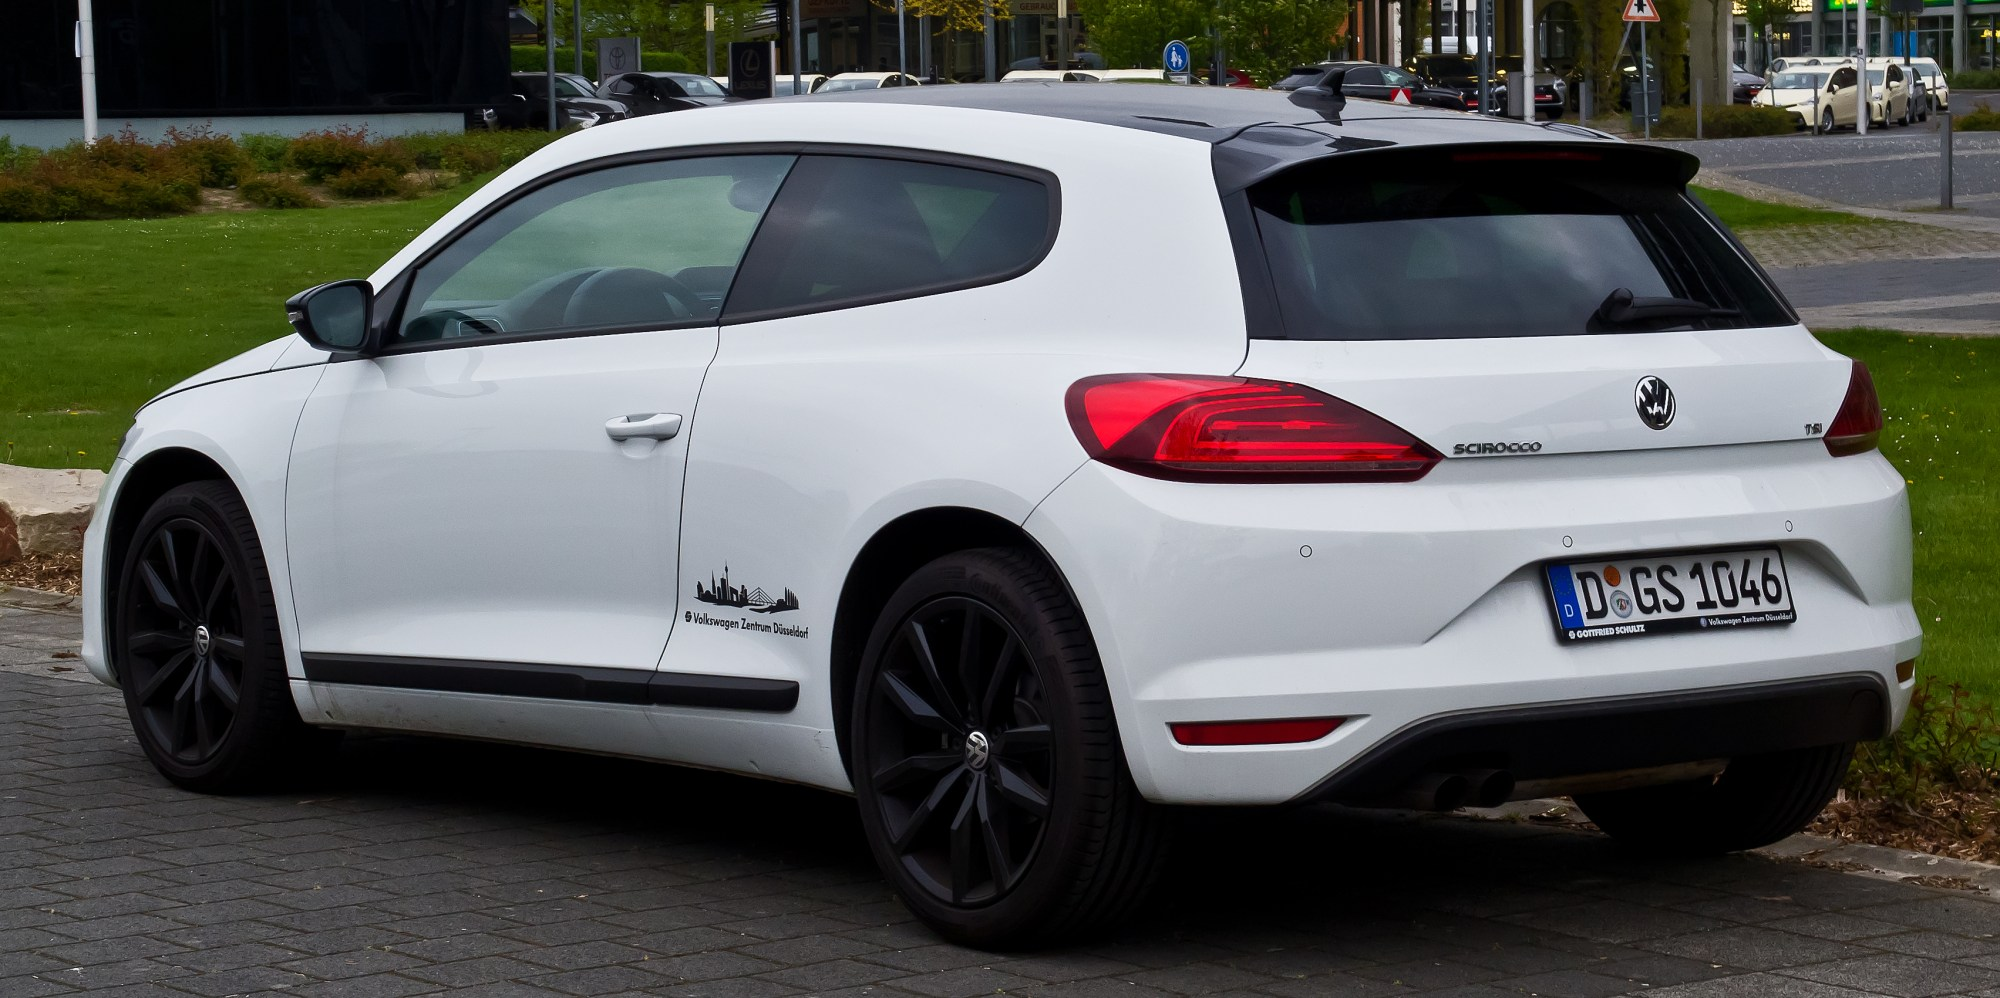 hight resolution of facelift volkswagen scirocco germany